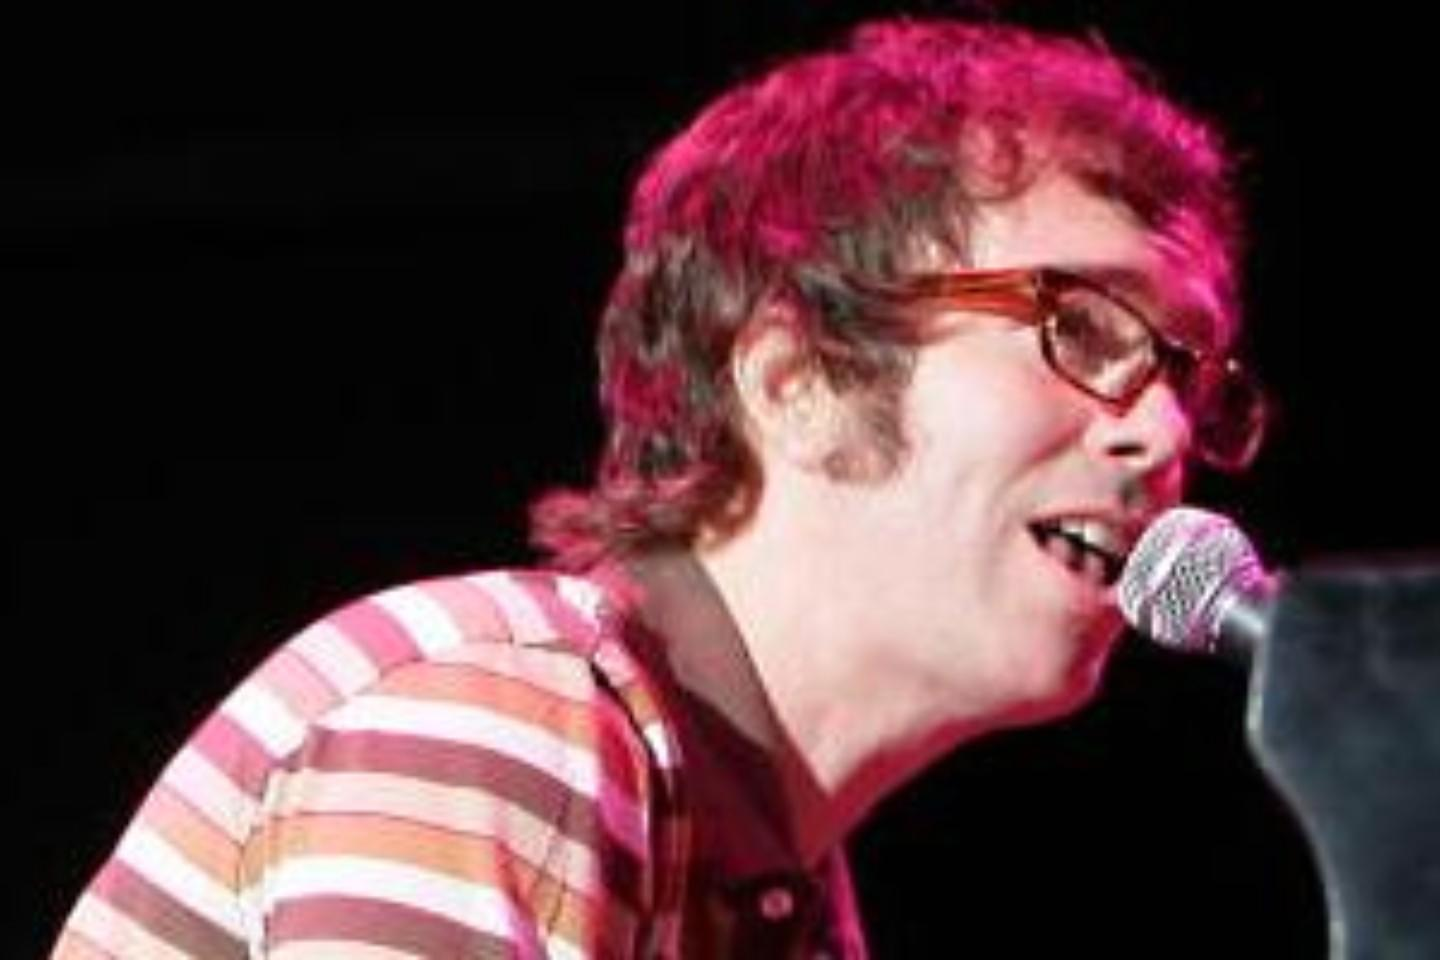 Ben Folds Tour 2020 Ben Folds Tickets | Ben Folds Tour Dates 2020 and Concert Tickets